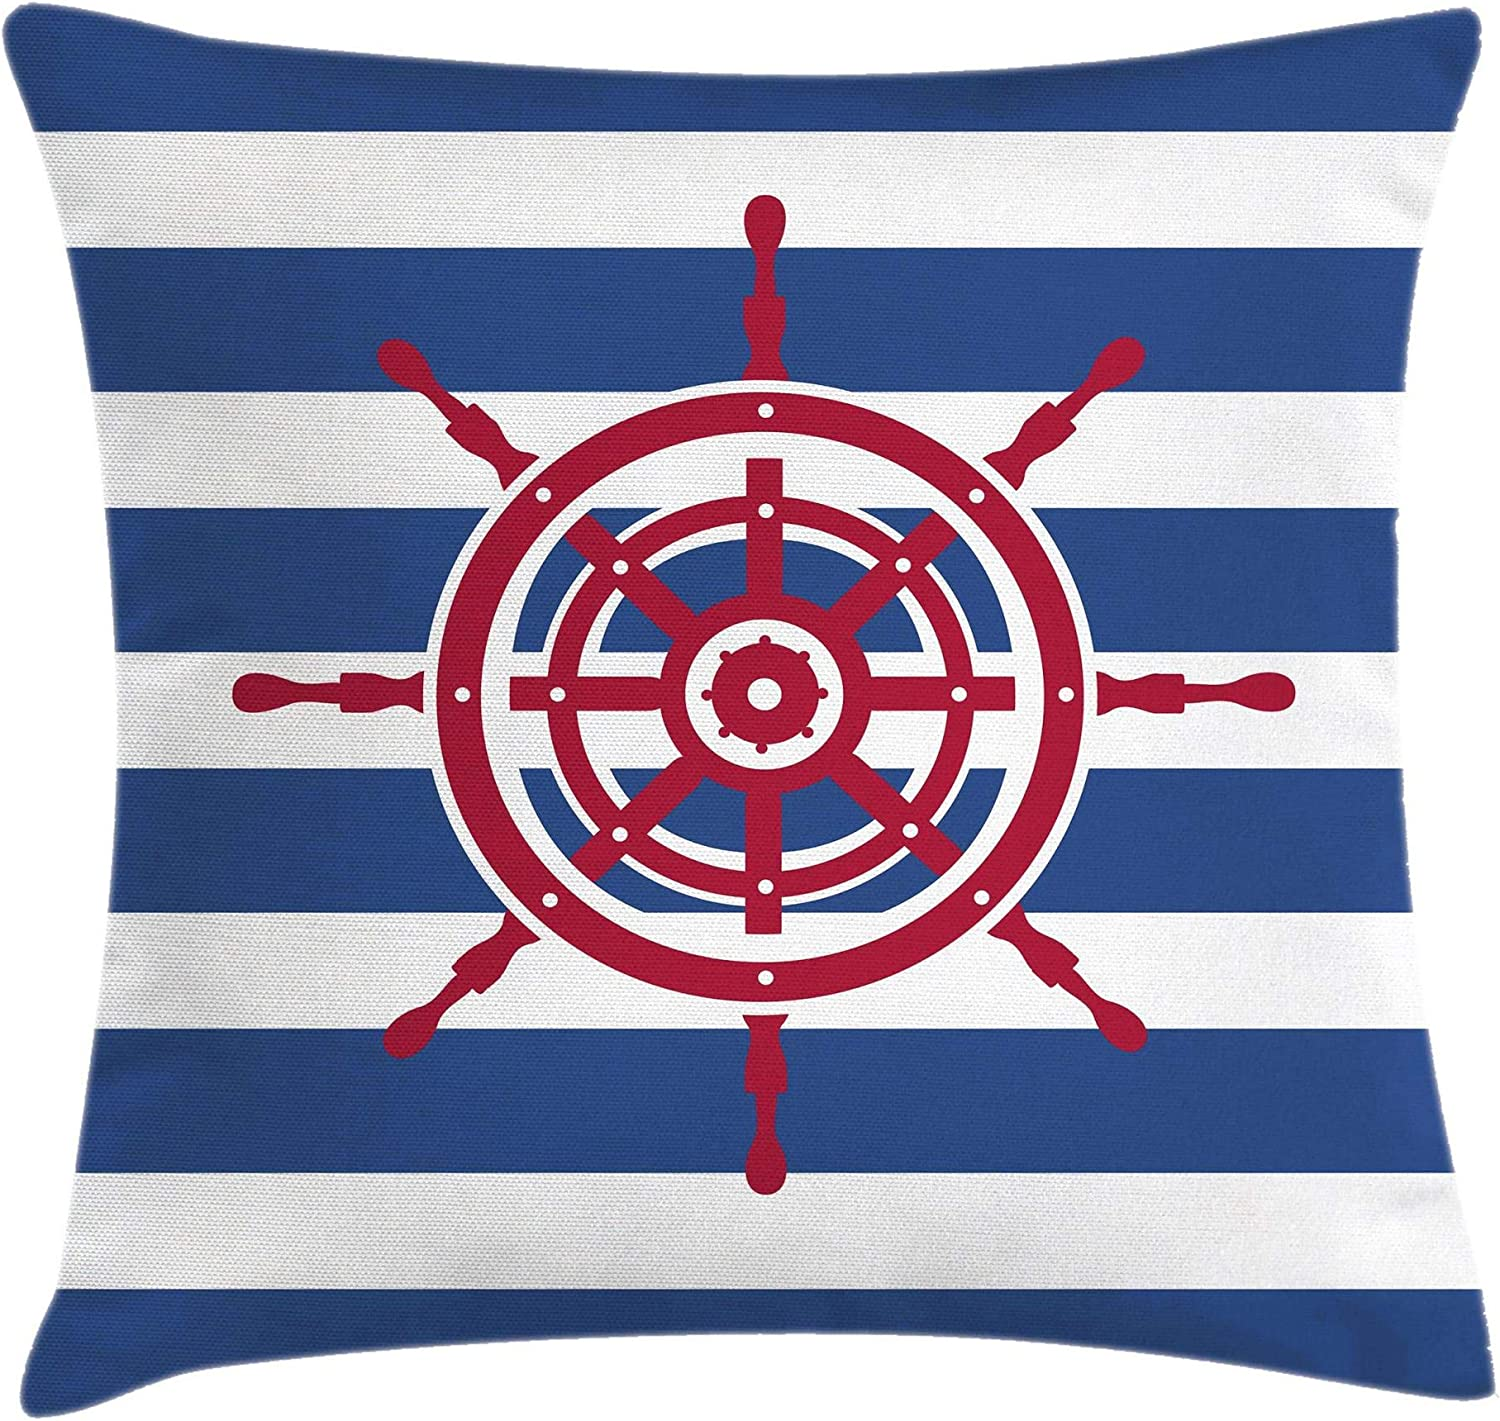 Amazon Com Ambesonne Ships Wheel Throw Pillow Cushion Cover Illustration Of Ship Steering Wheel On A Stripped Background Artwok Decorative Square Accent Pillow Case 16 X 16 Navy Blue Home Kitchen